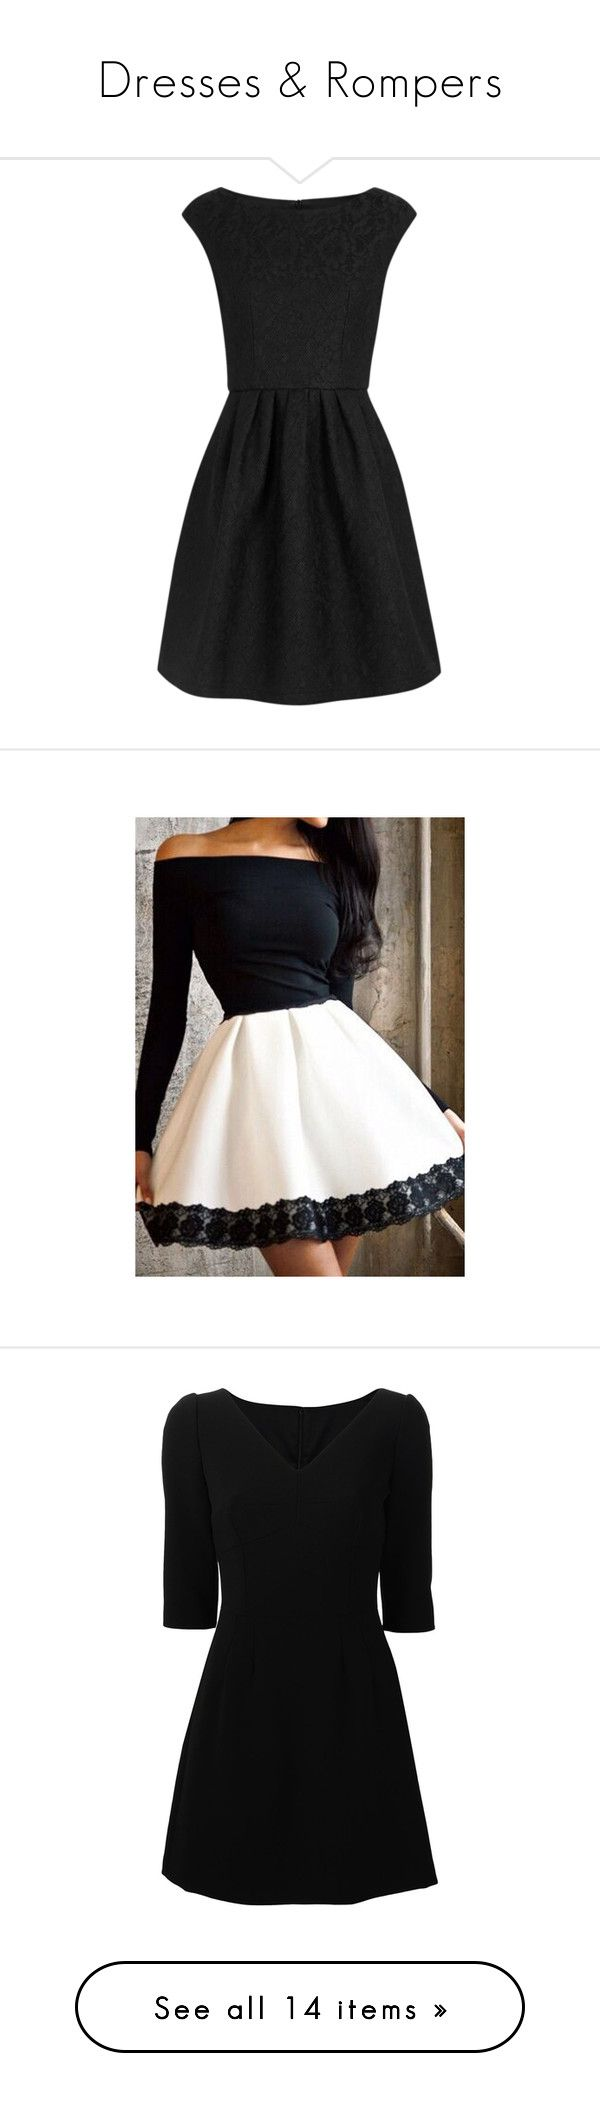 """Dresses & Rompers"" by melissaxox123 on Polyvore featuring dresses, black circle skirt, black skater skirt, lace dress, black flared skirt, flare dress, vestidos, white, lace mini dress and long sleeve lace dress"